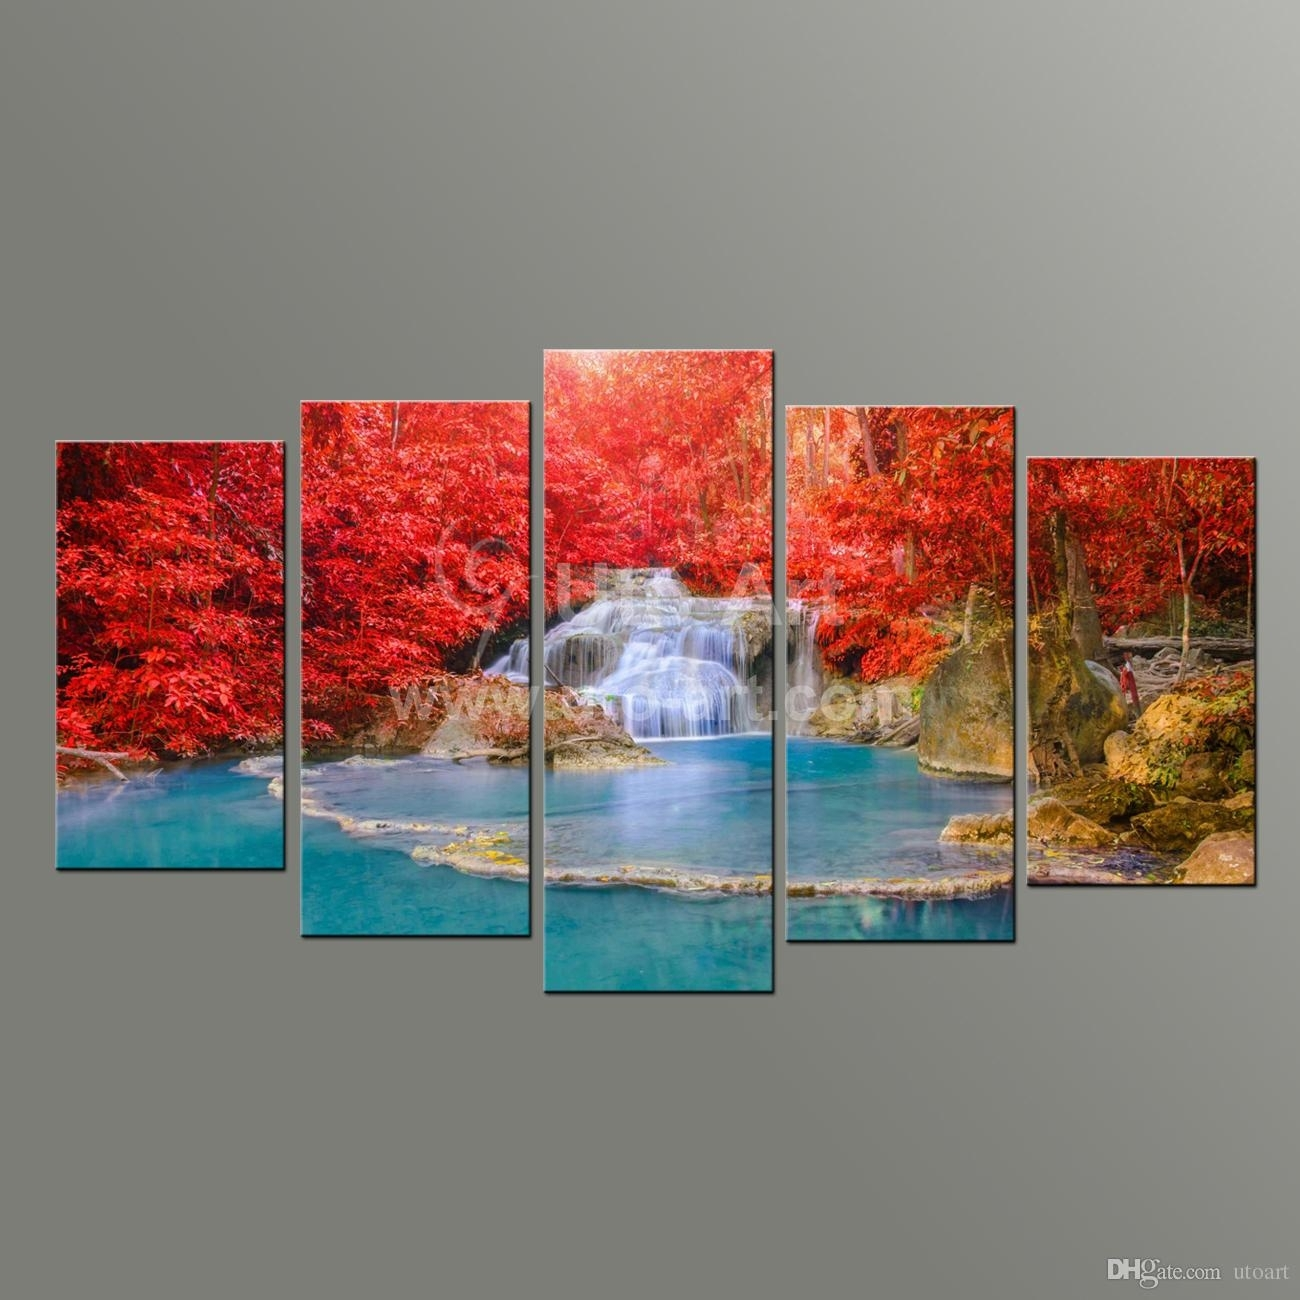 2018 5 Panel Wall Art Paintings Landscaping Waterfall Picture And With Current Wall Art Paintings (View 8 of 20)